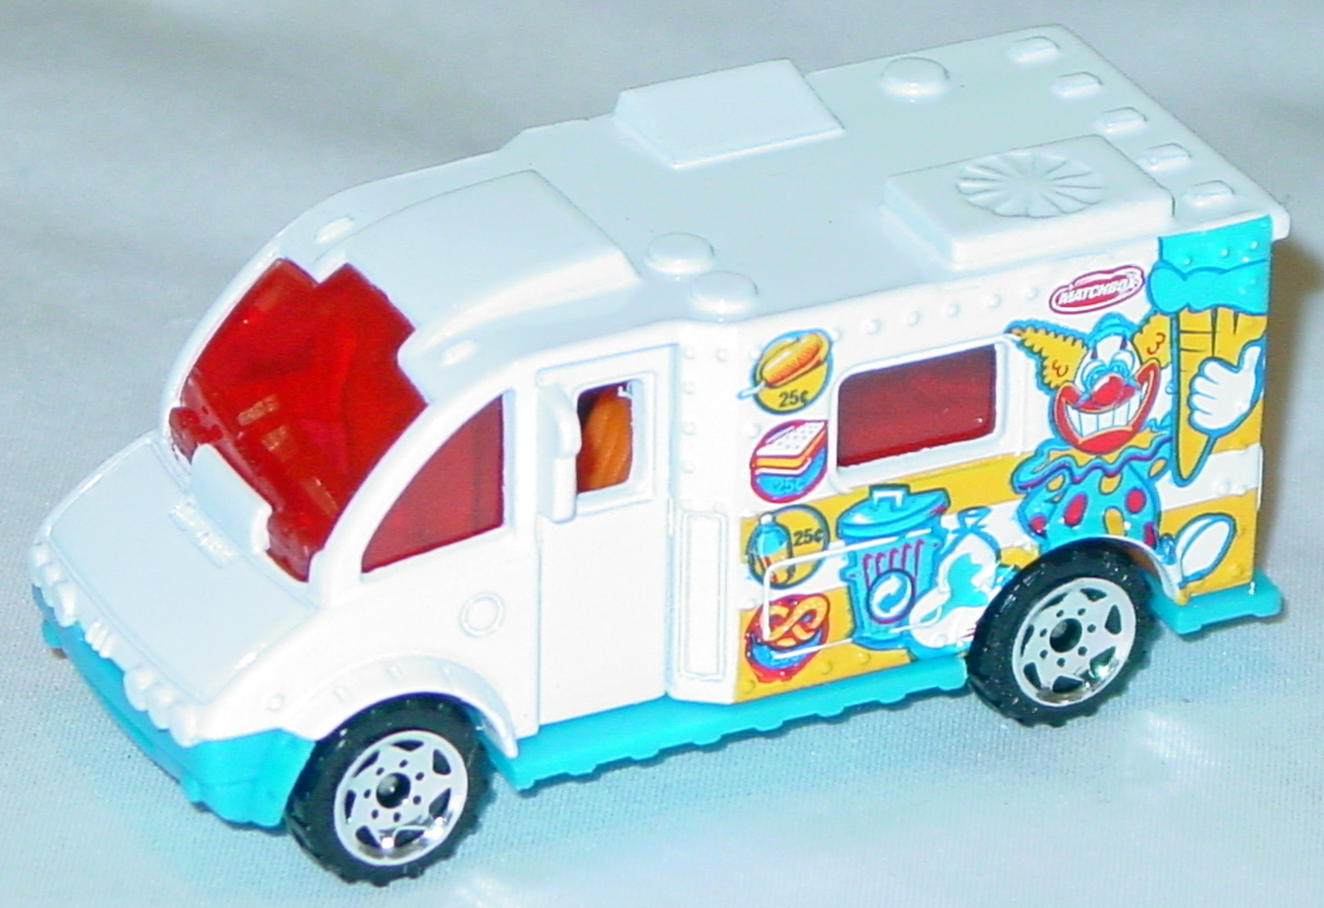 Offshore SuperFast 65 K 5 - 2004 59 Ice Cream Truck White clown design tampo made in China